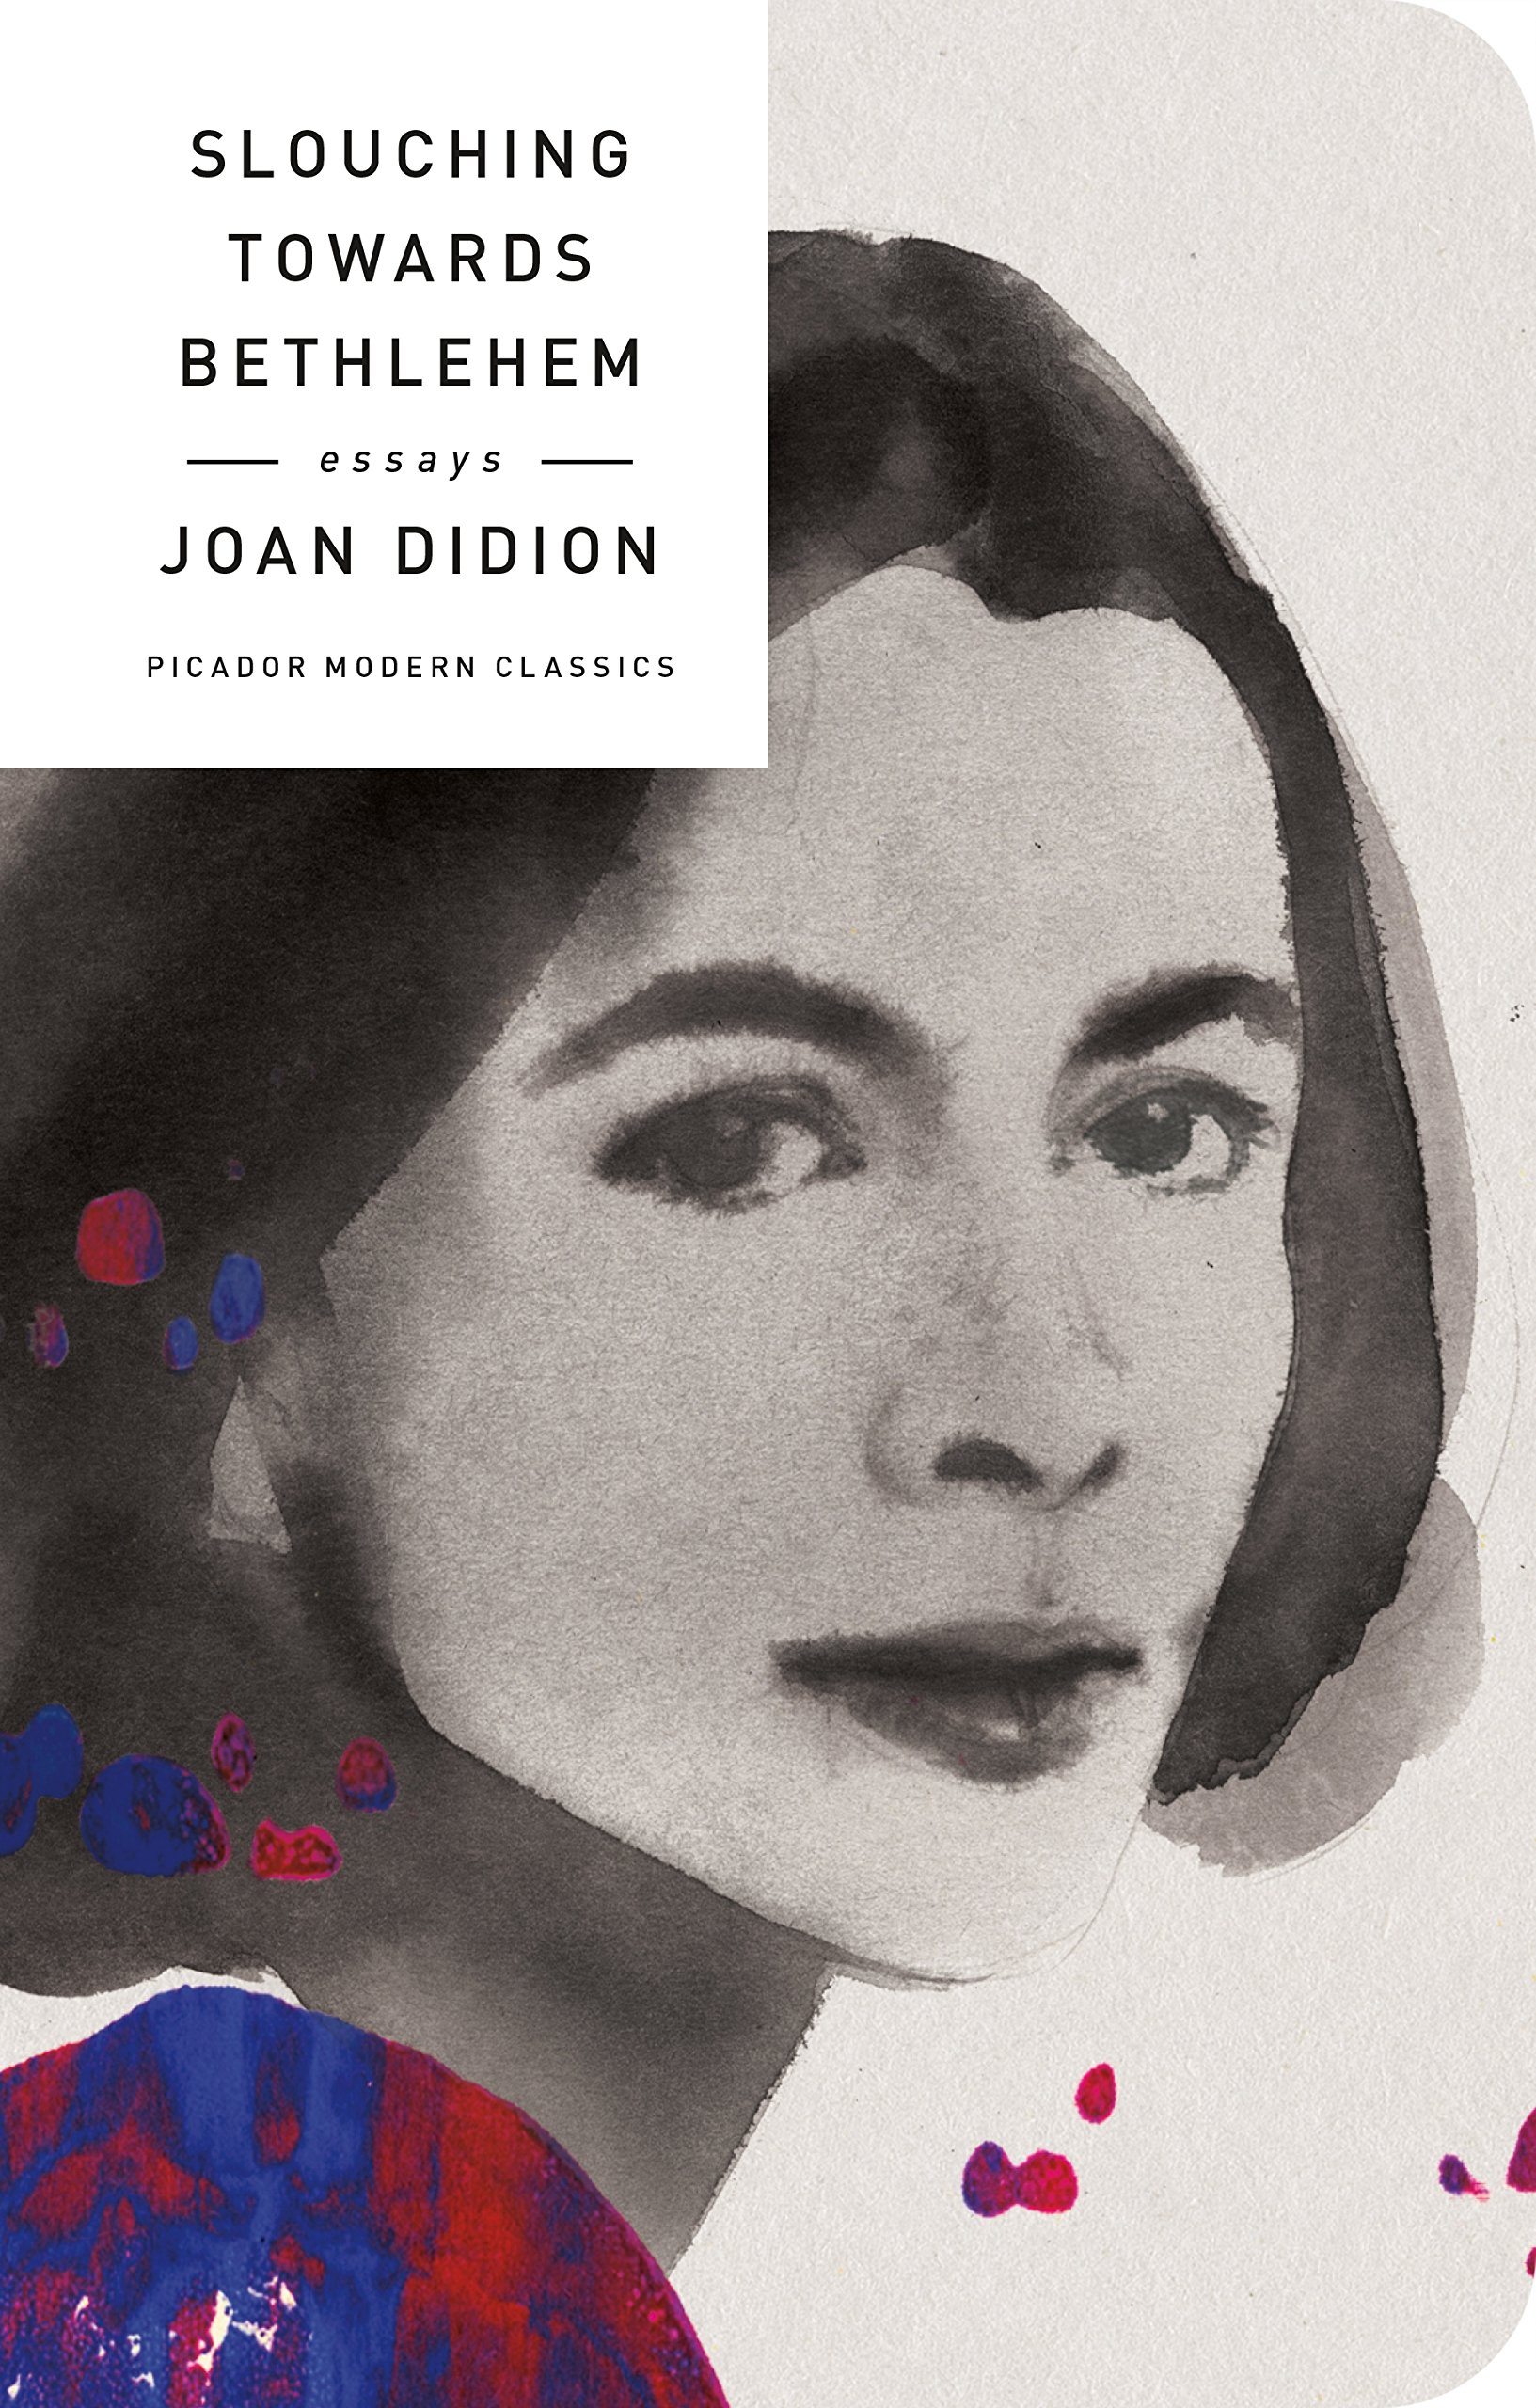 023 Slouching Towards Bethlehem Essay Example Joan Didion Singular Essays Collections On Santa Ana Winds Amazon Full